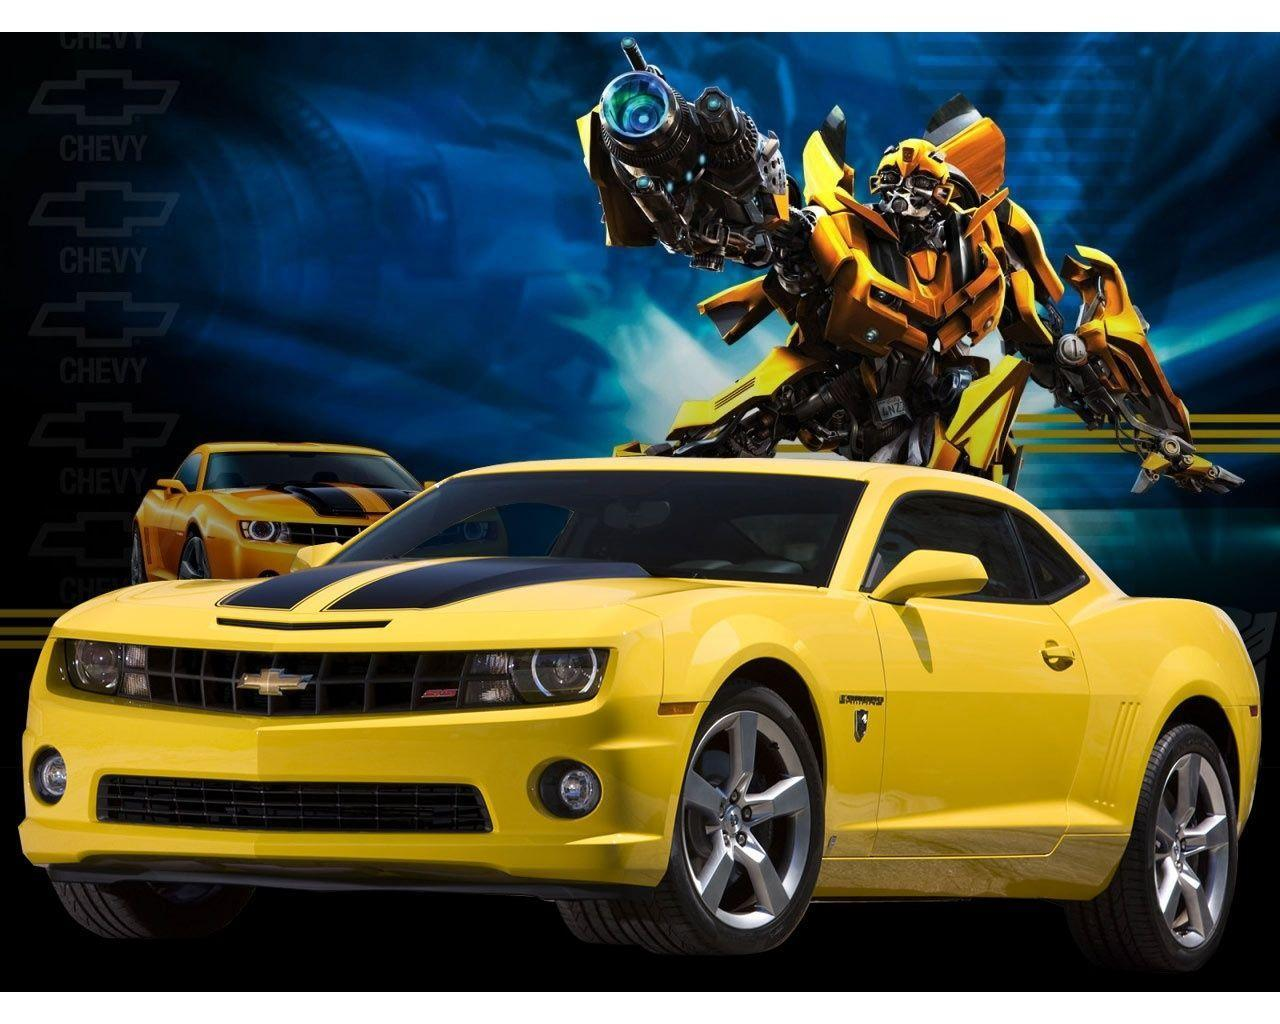 Transformers Bumblebee Wallpapers Wallpaper Cave